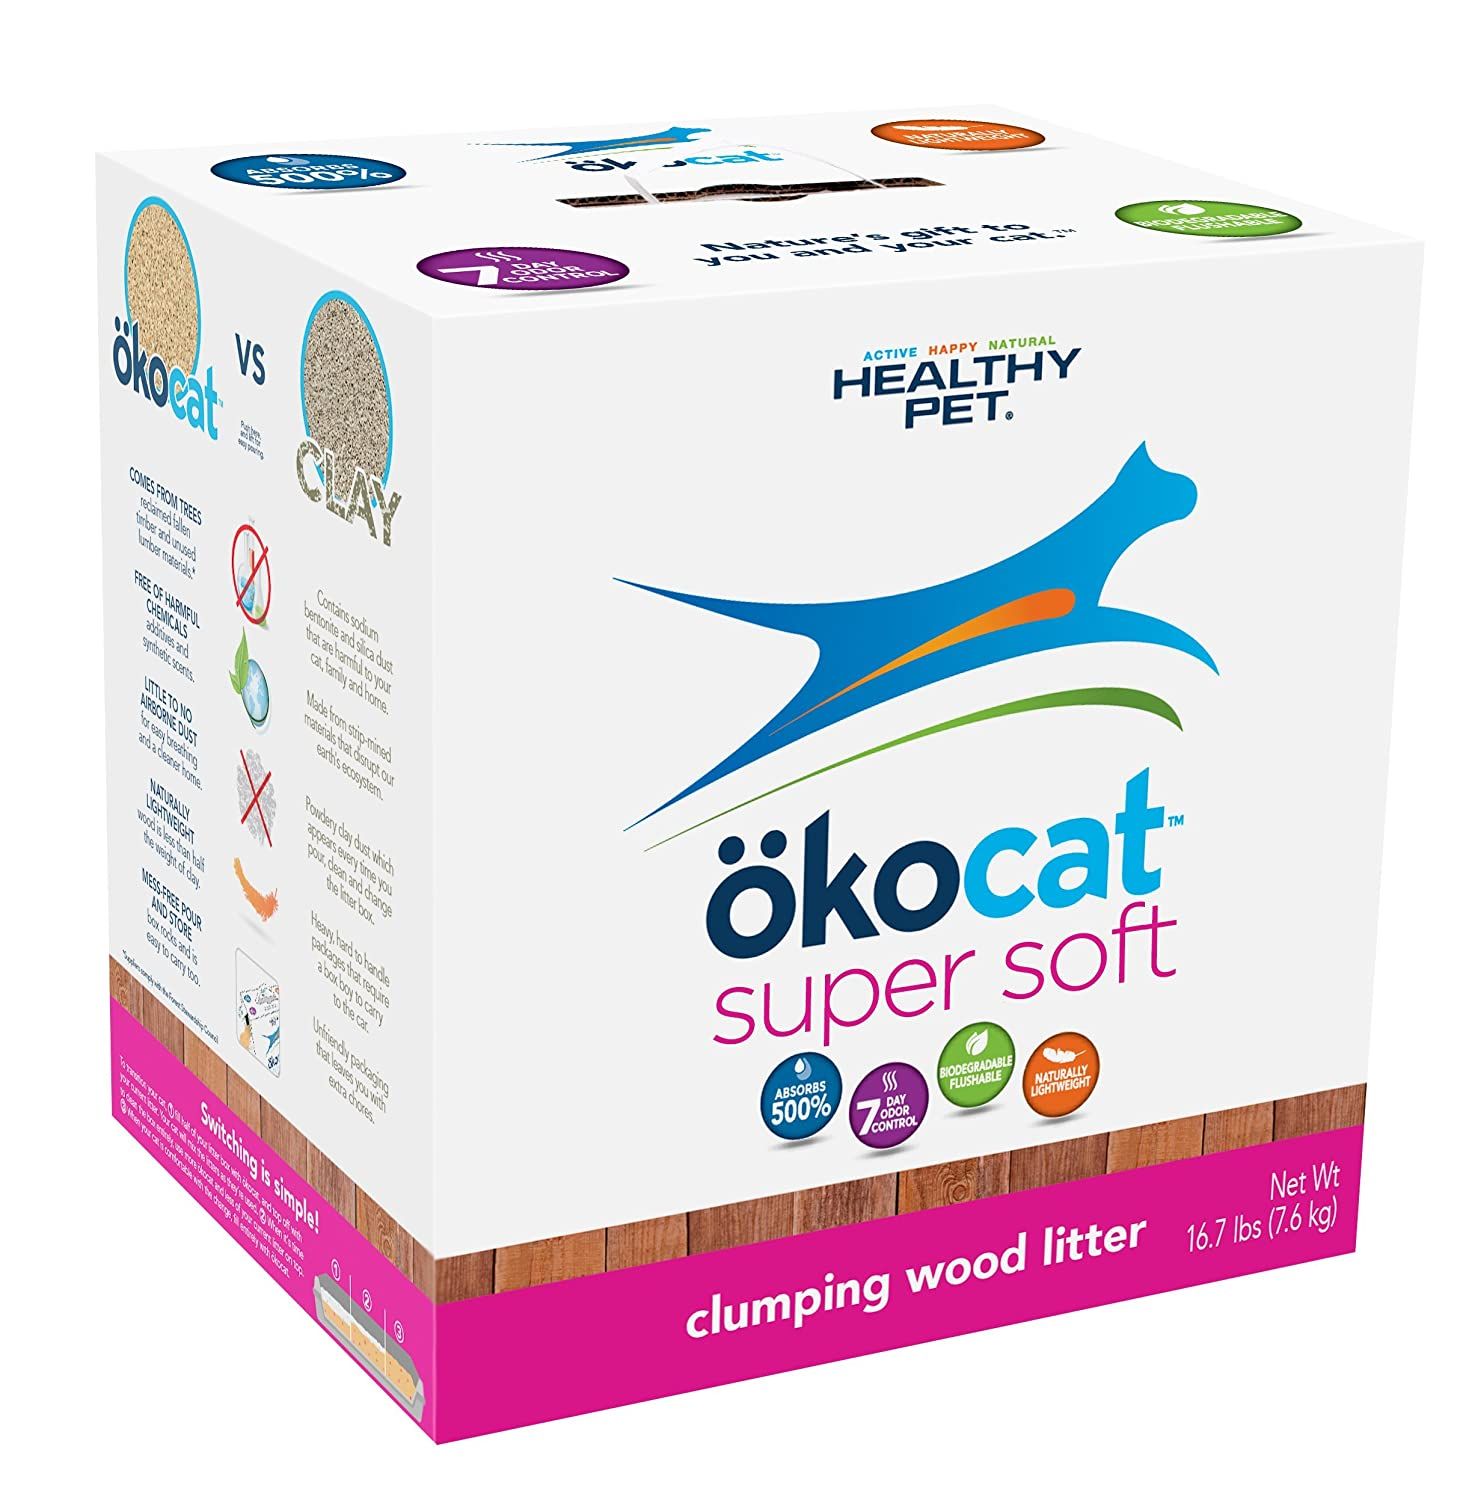 okocat-litter-reviews